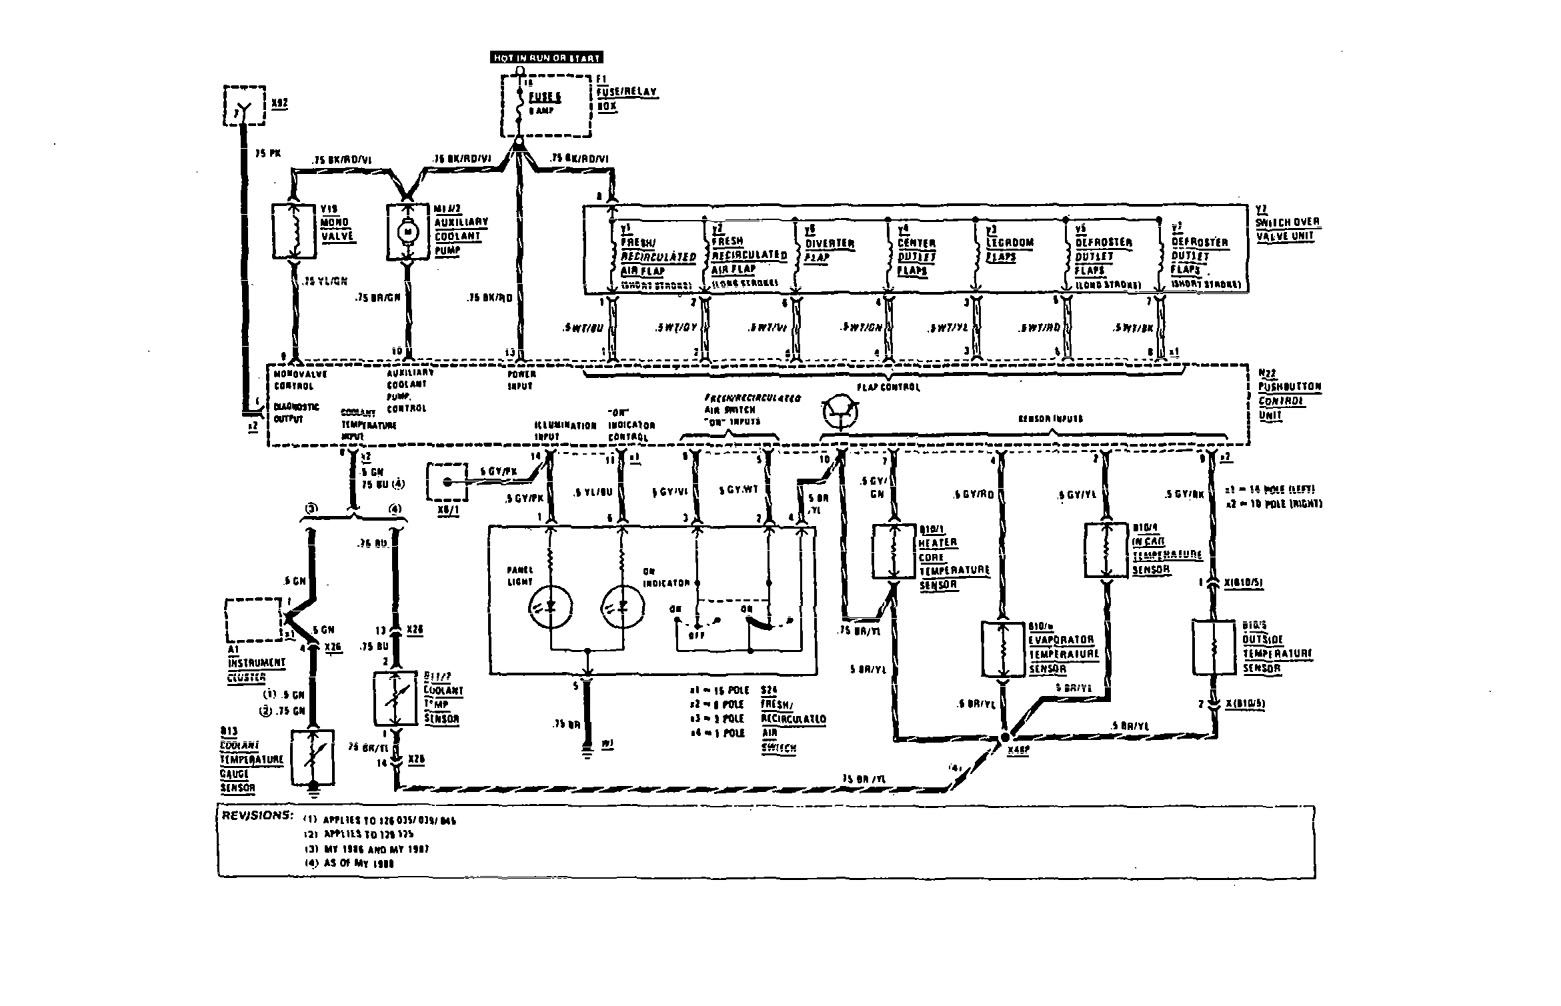 6 5 sel wiring harness mercedes benz 560sel 1990 1991 wiring diagrams 02 dodge ram sel wiring harness diagram